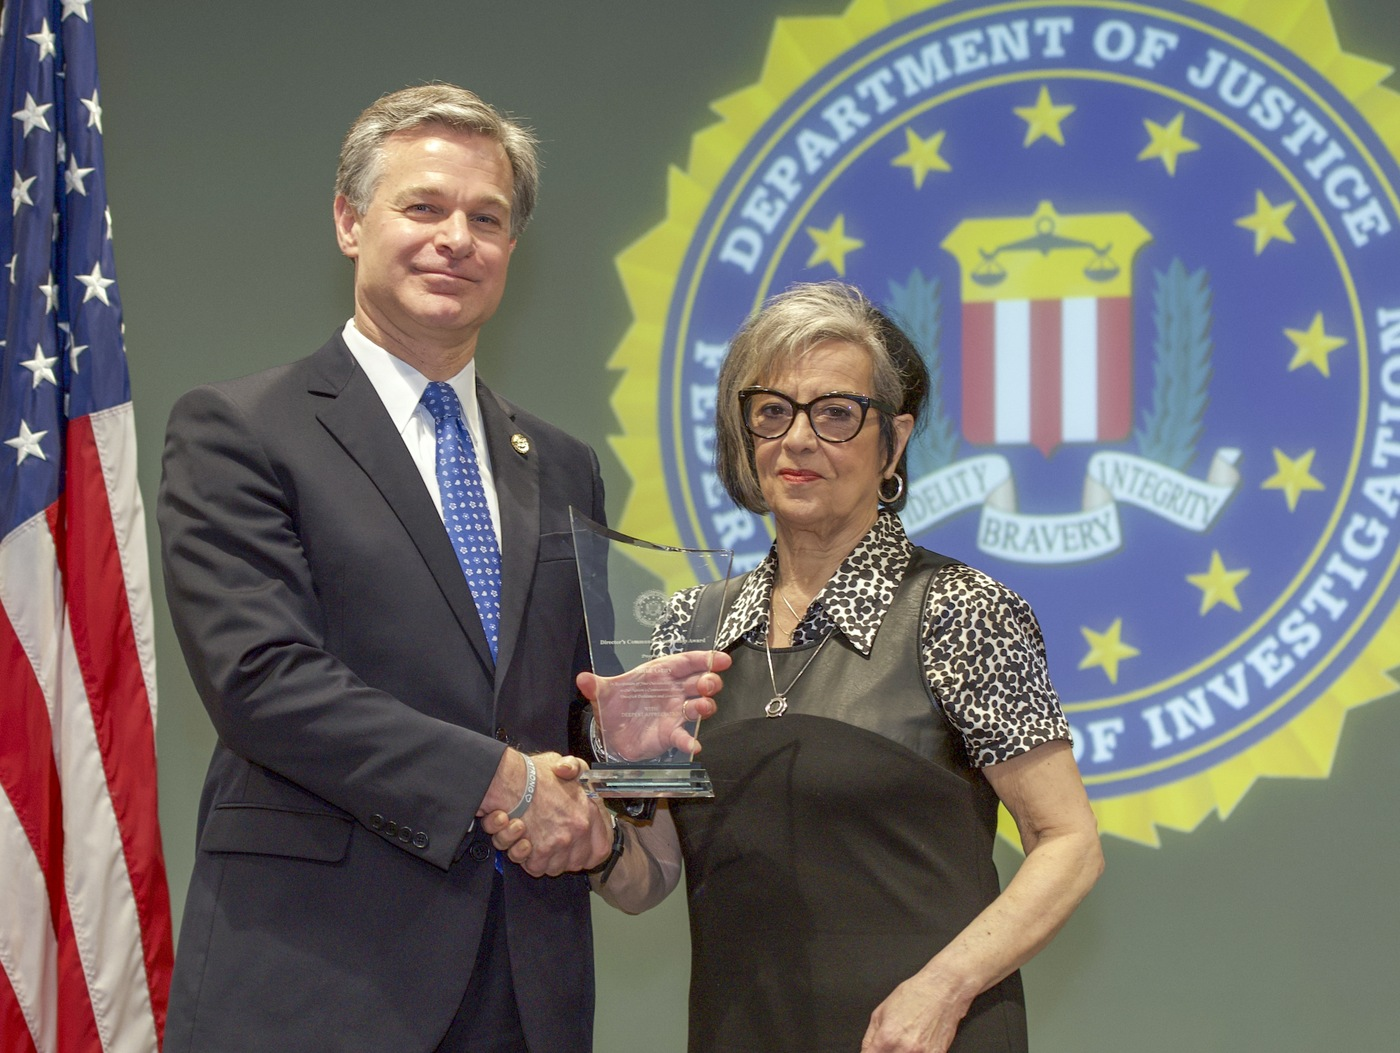 FBI Director Christopher Wray presents Cleveland Division recipient Anita Gray with the Director's Community Leadership Award (DCLA) at a ceremony at FBI Headquarters on May 3, 2019.